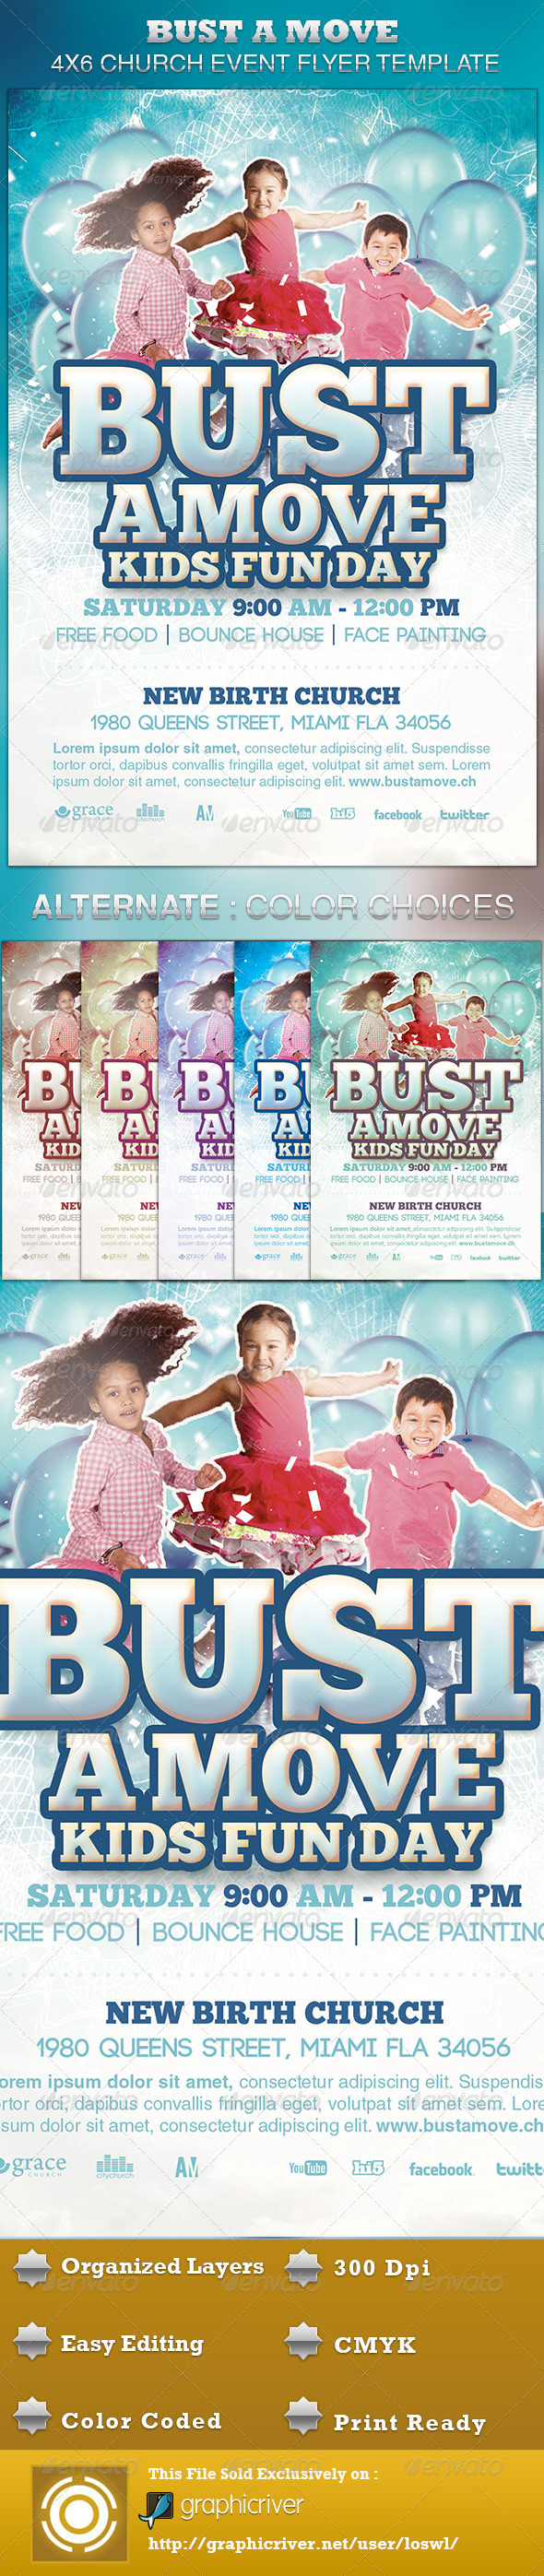 Bust A Move Church Event Flyer Template - Church Flyers